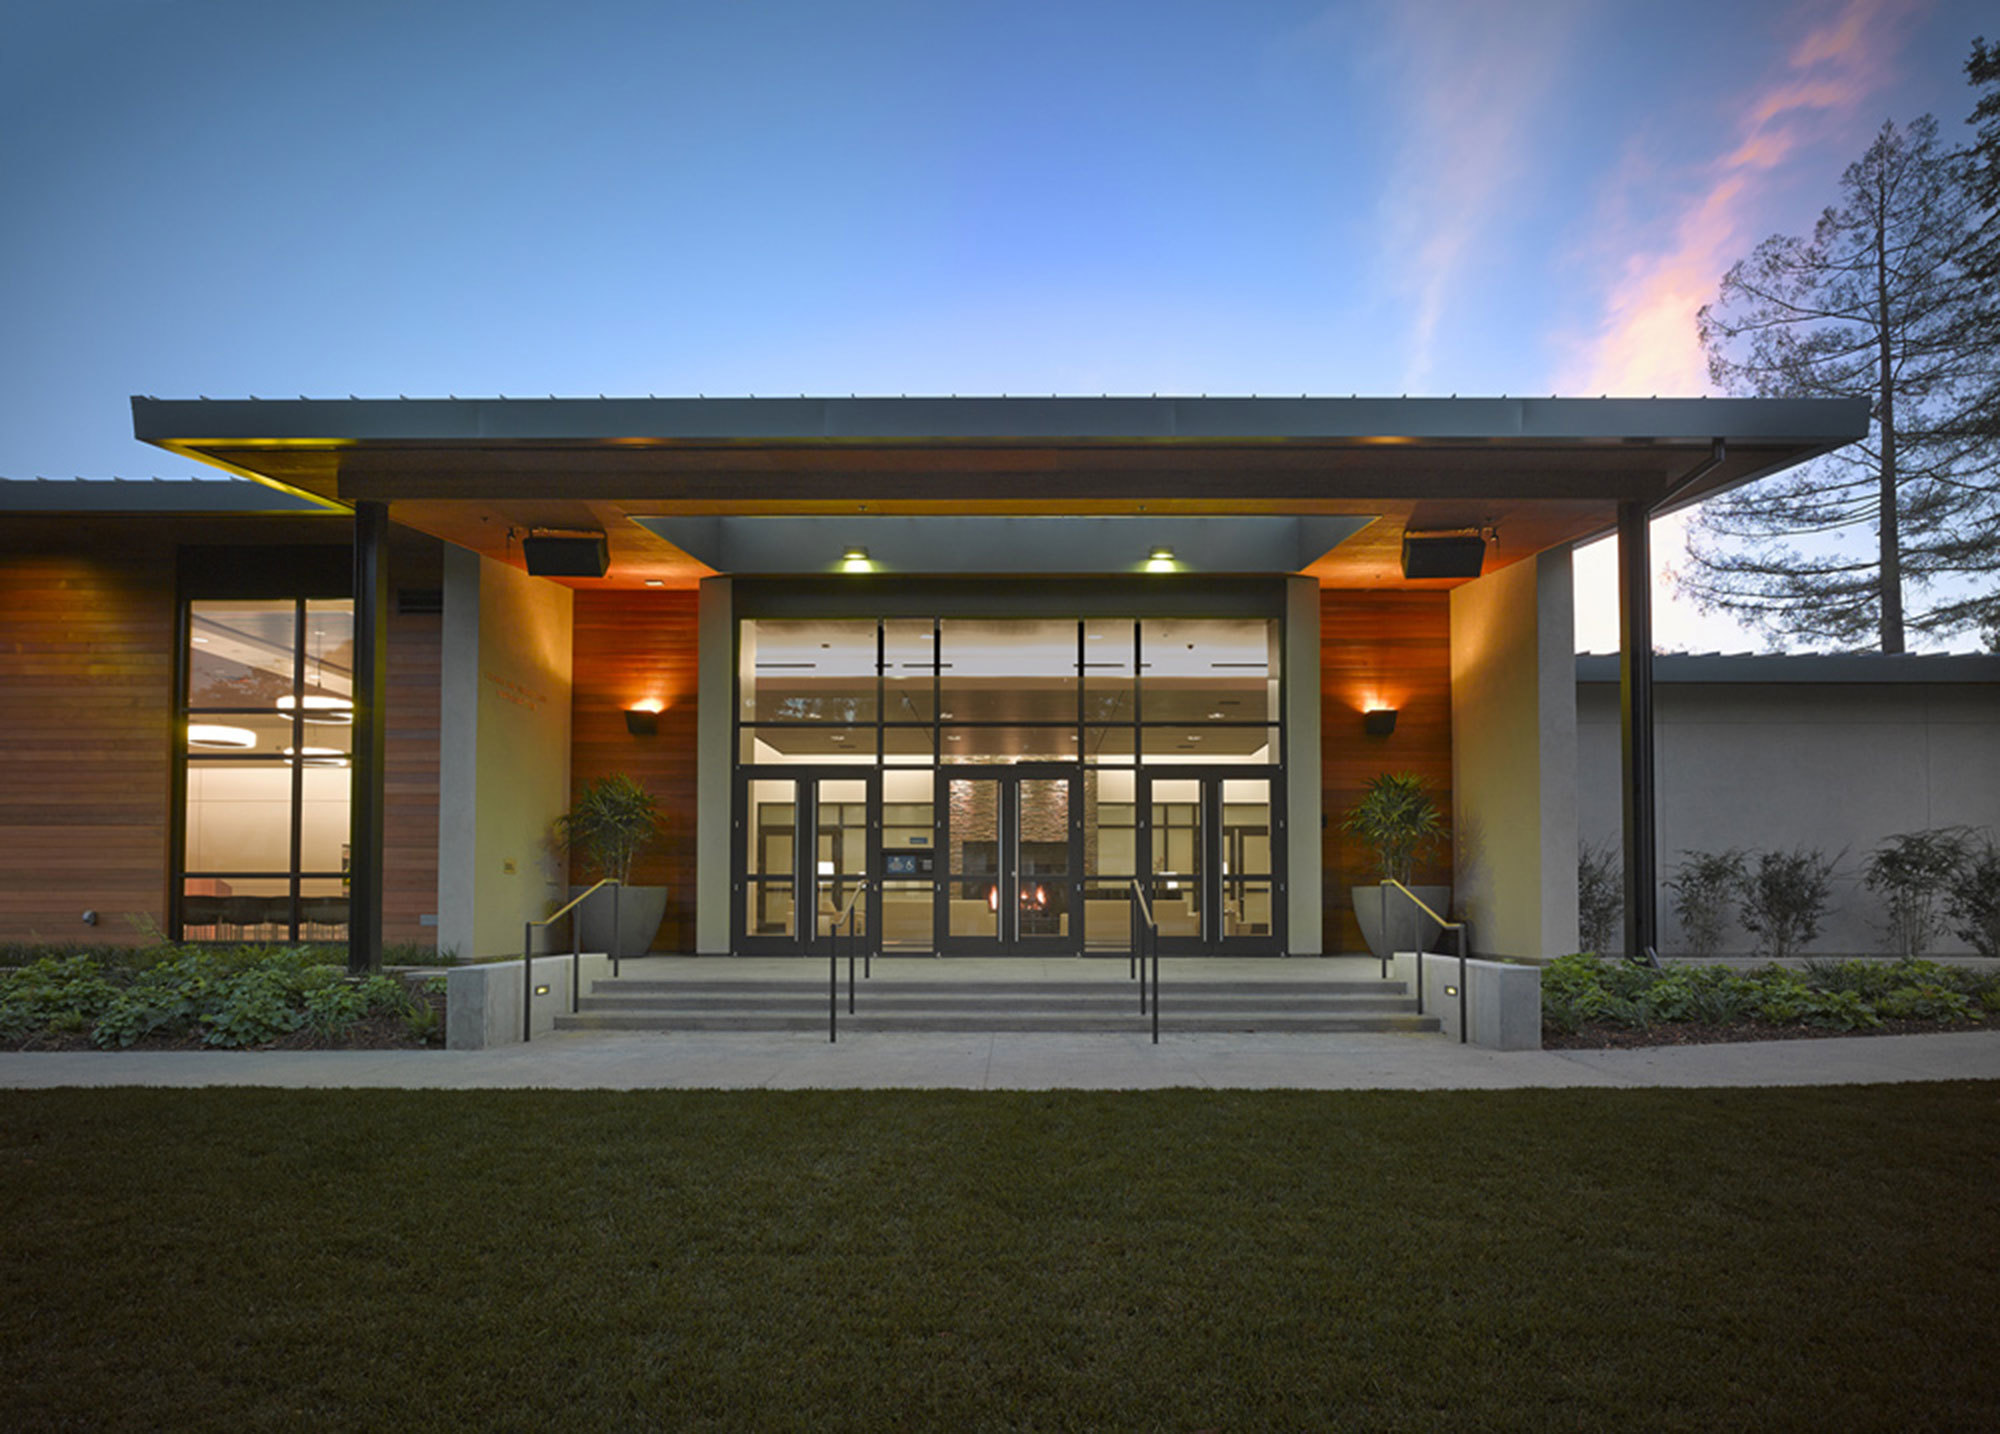 Image of the front of the Student Residence building (with wood paneling) on the San Rafael, CA campus